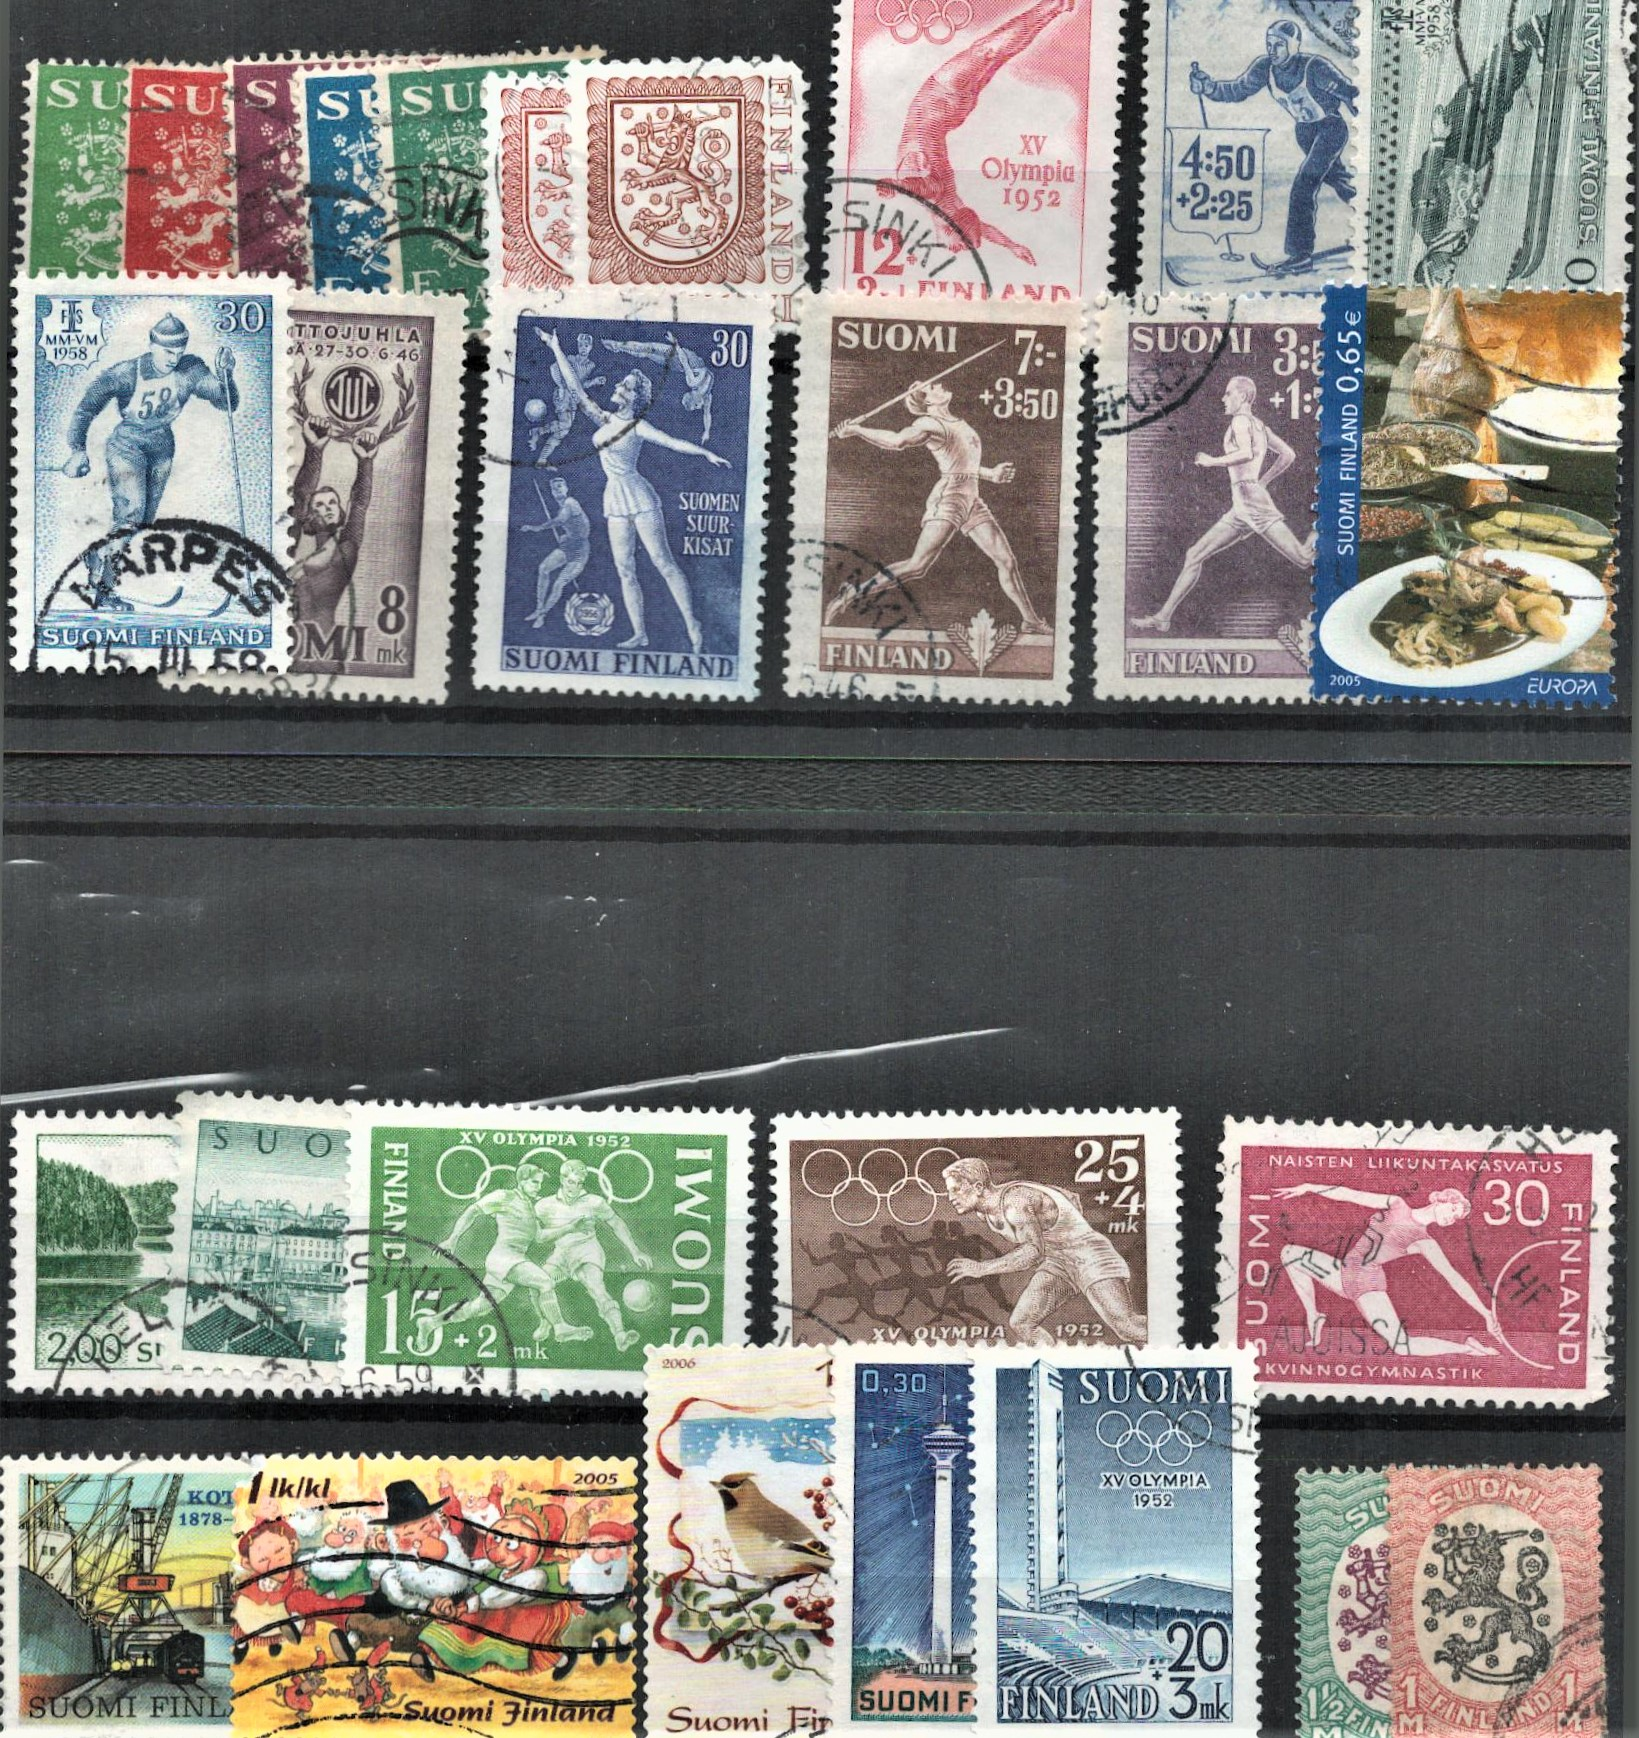 Finland stamps on 3 stockcards. Good condition. We combine postage on multiple winning lots and